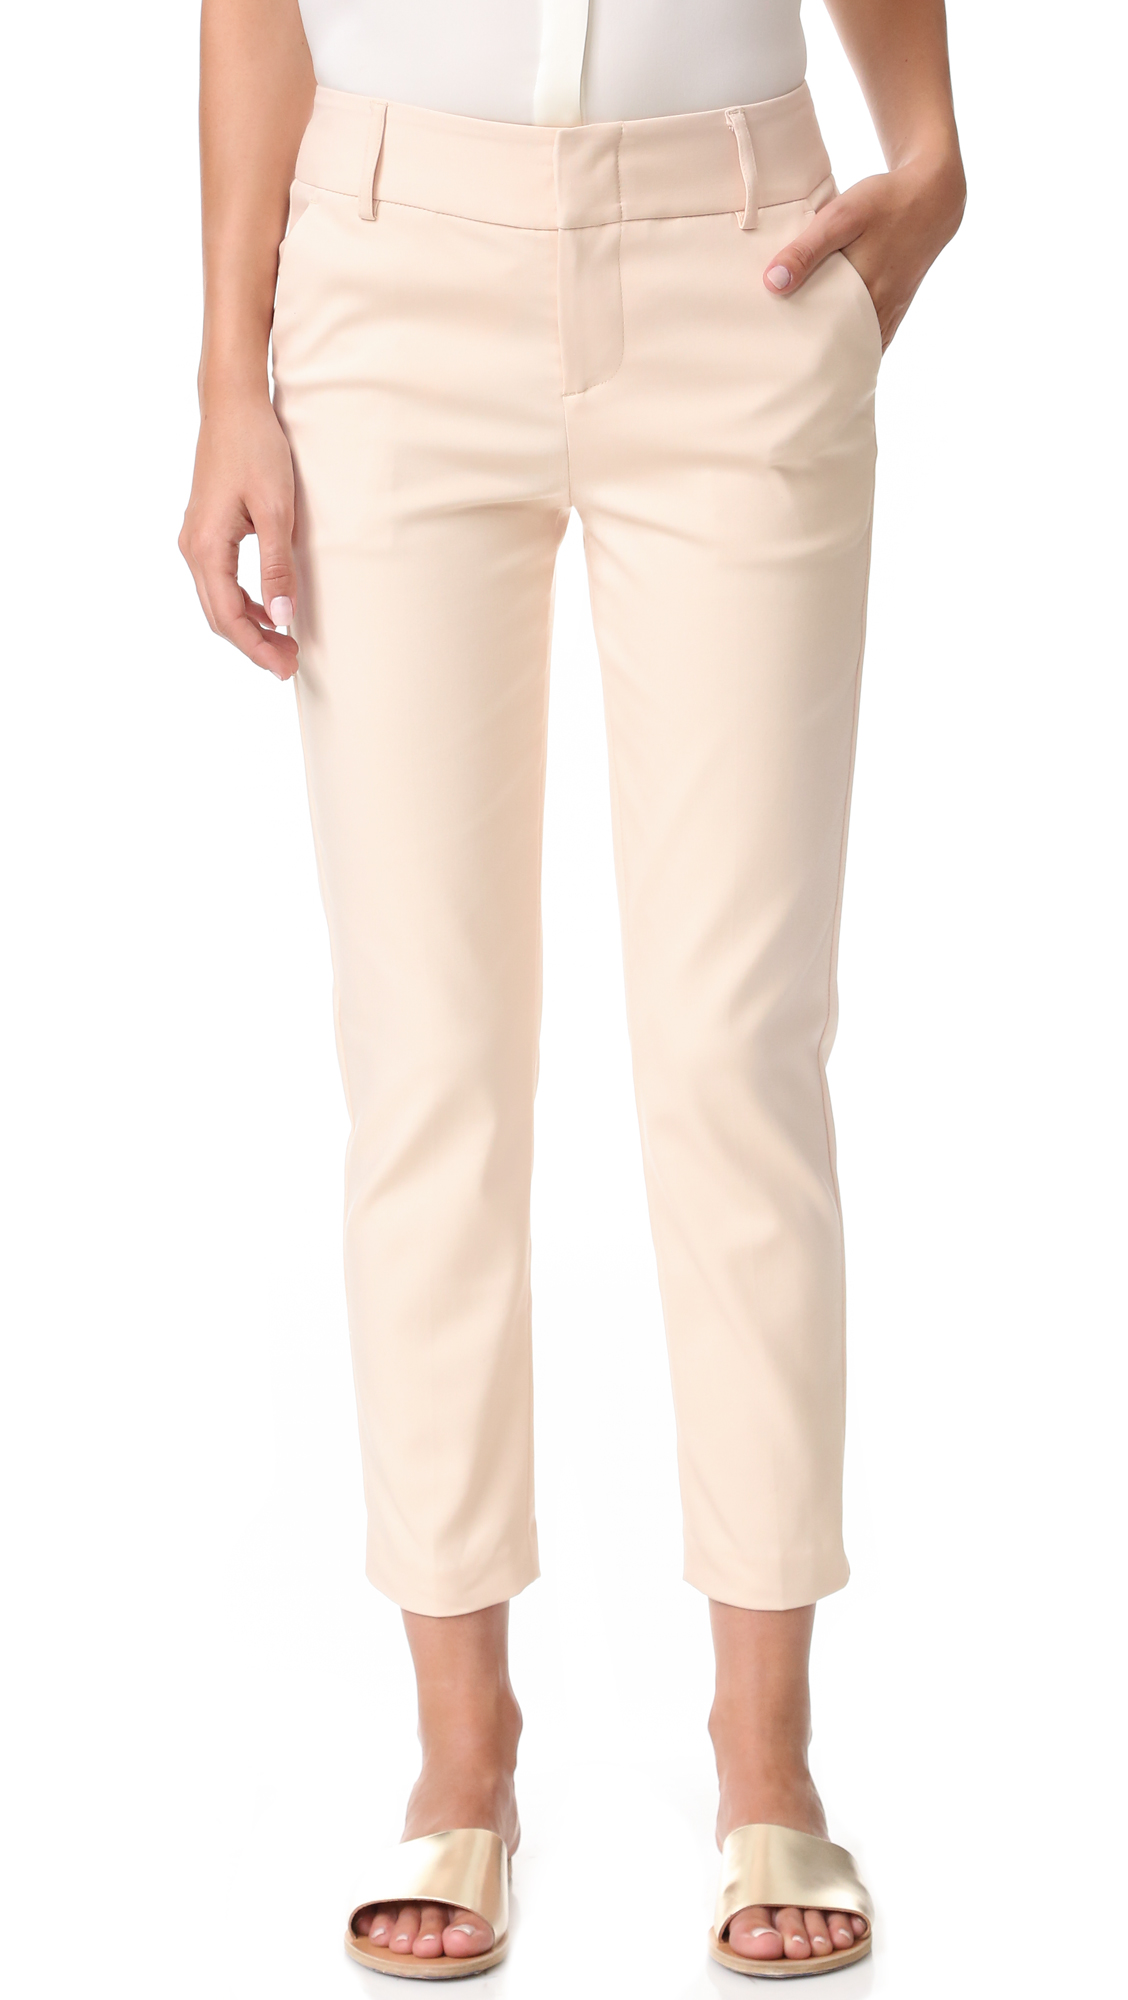 alice + olivia Stacey Slim Trousers - Blush